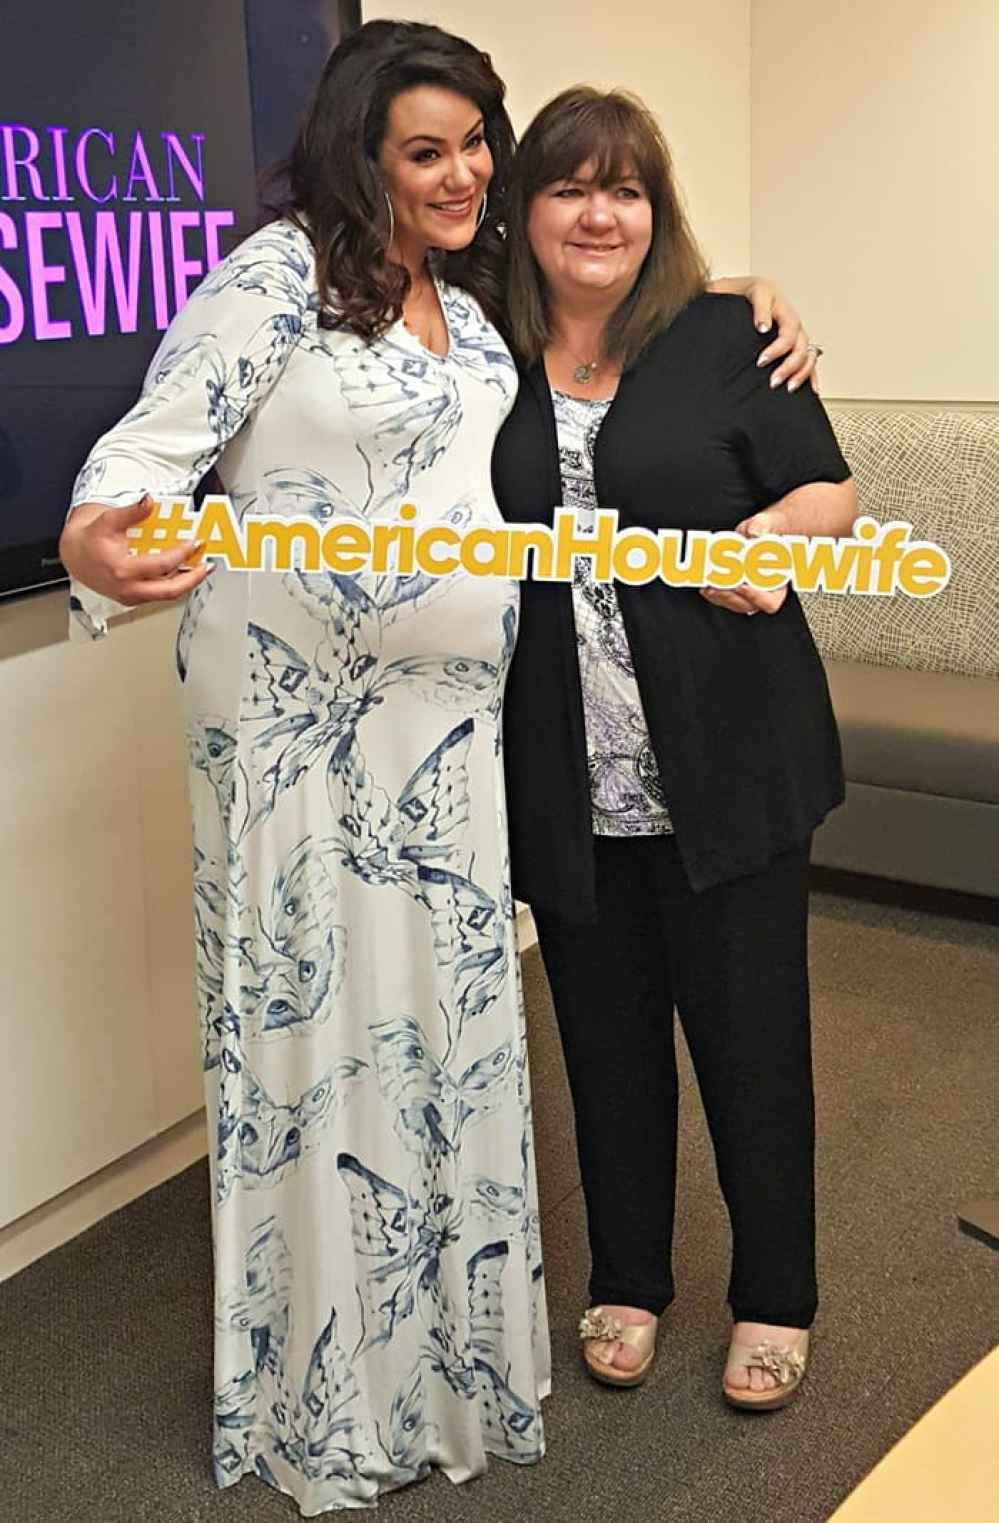 katy mixon american housewife with julee morrisib